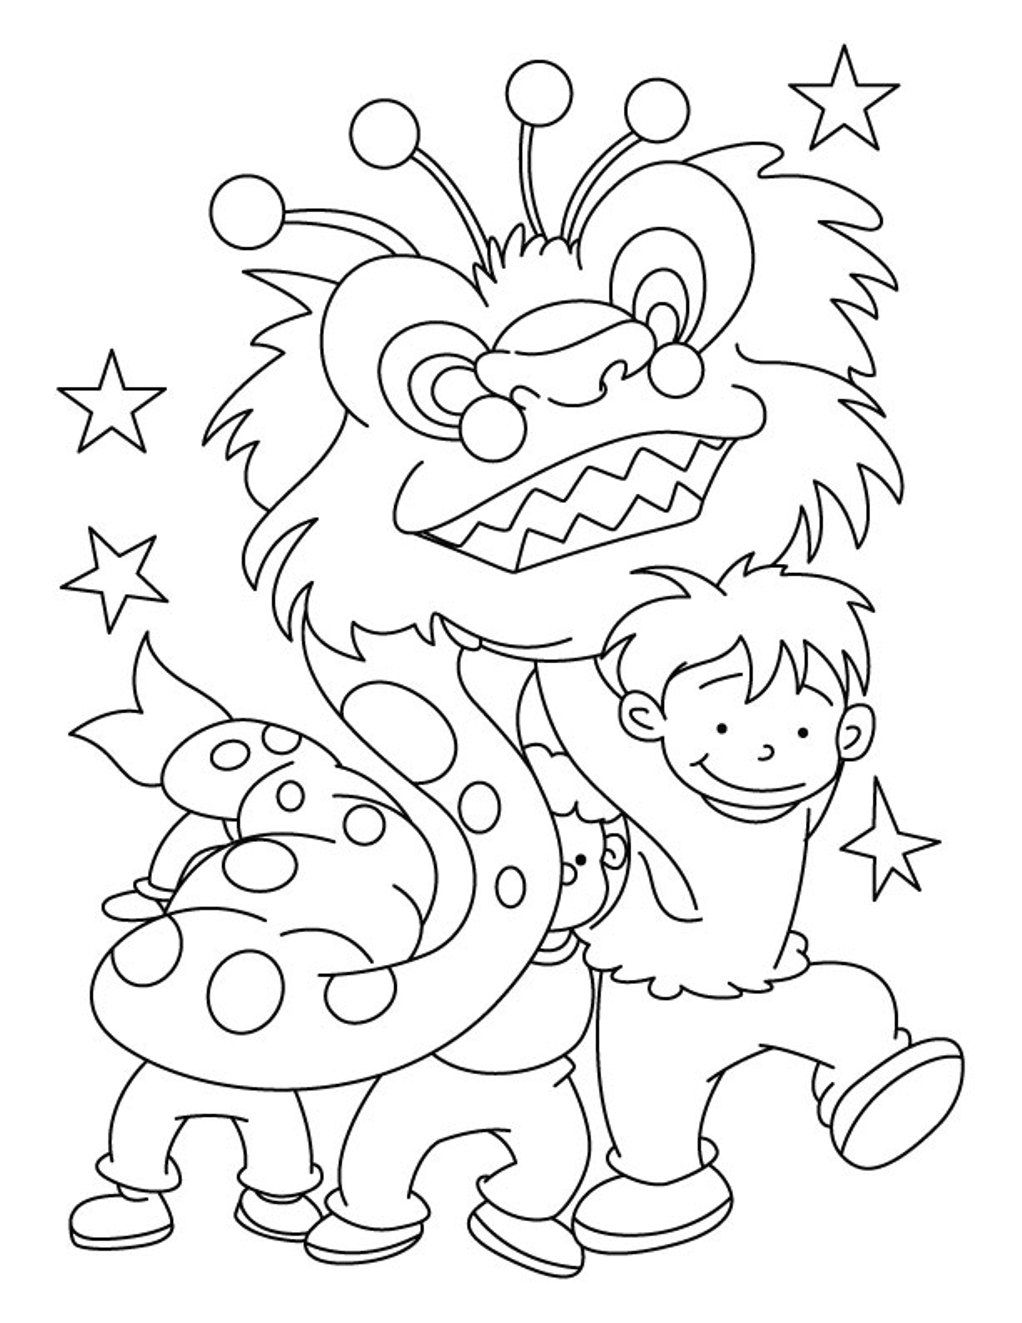 dragon chinese new year coloring pages jpg  1022 1323 Craft